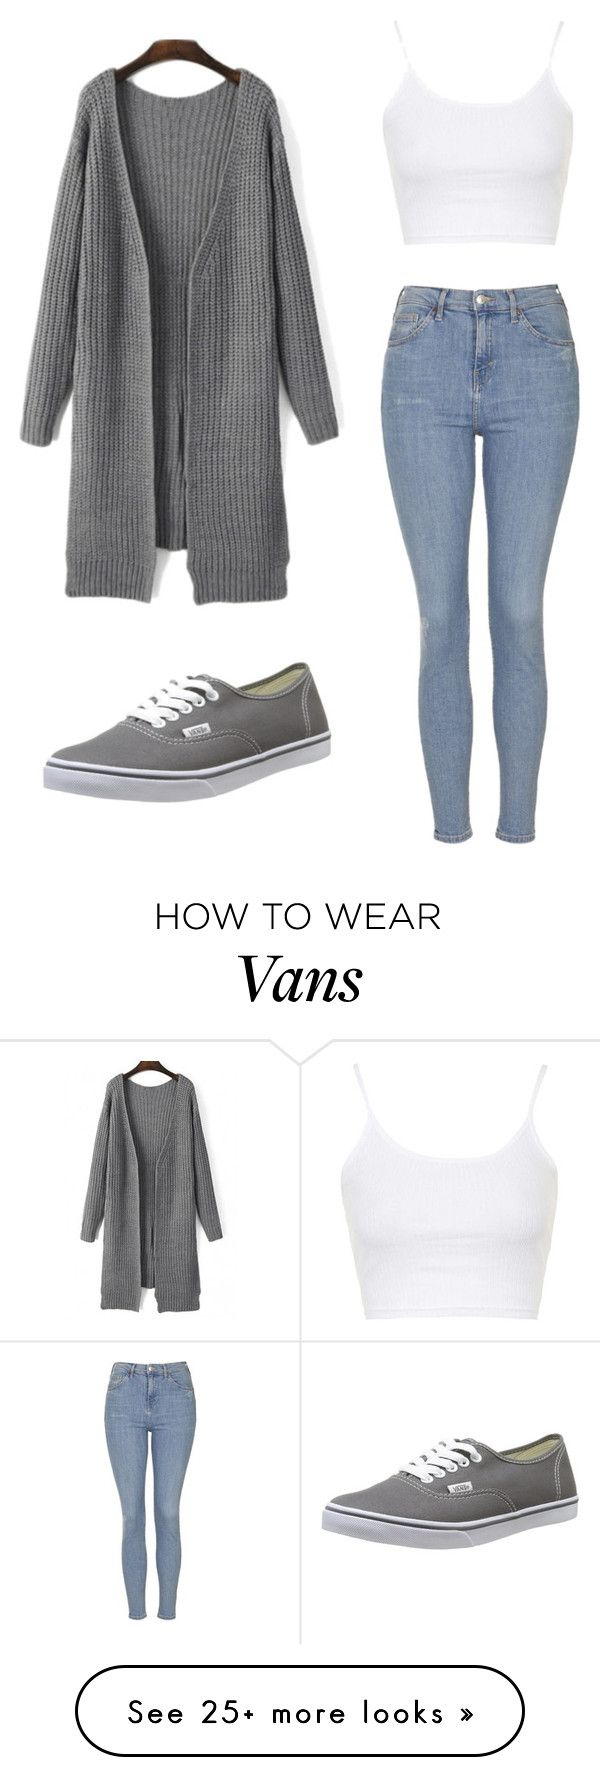 """"""":3"""" by deima-835 on Polyvore featuring Topshop and Vans"""